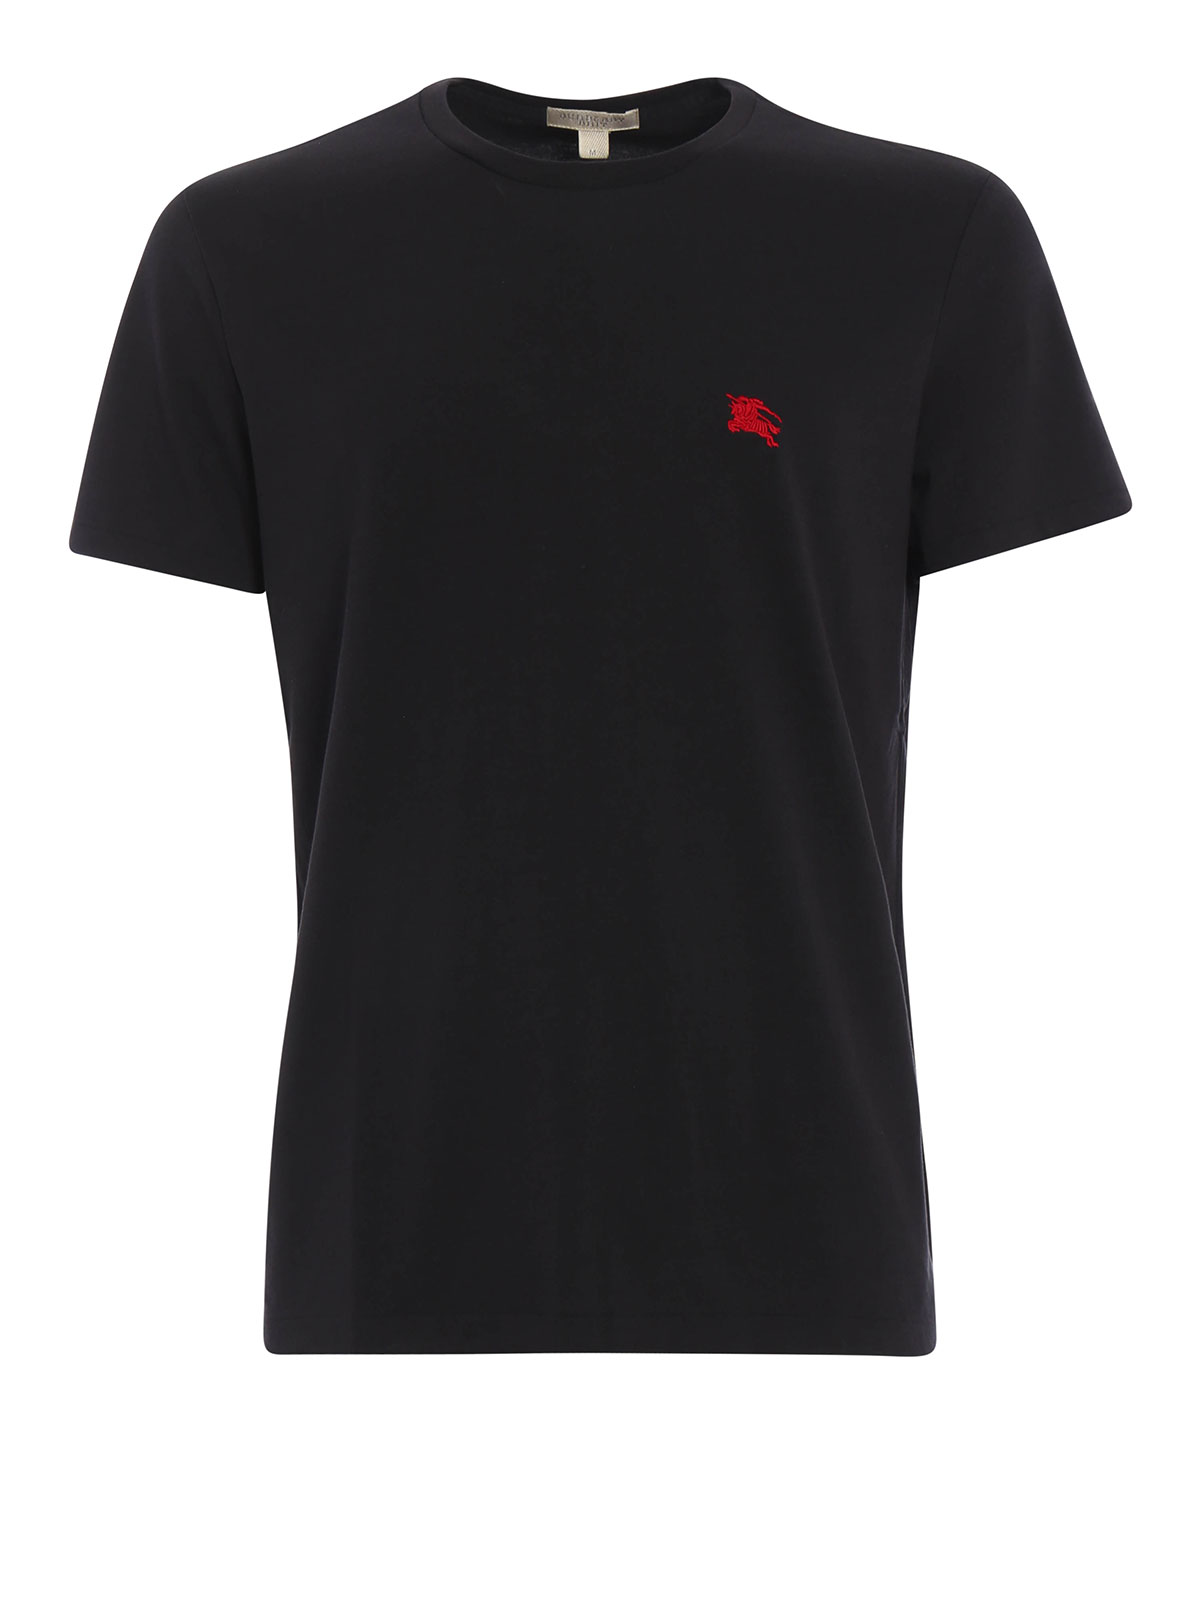 Embroidered logo cotton t shirt by burberry t shirts for Burberry t shirts for sale